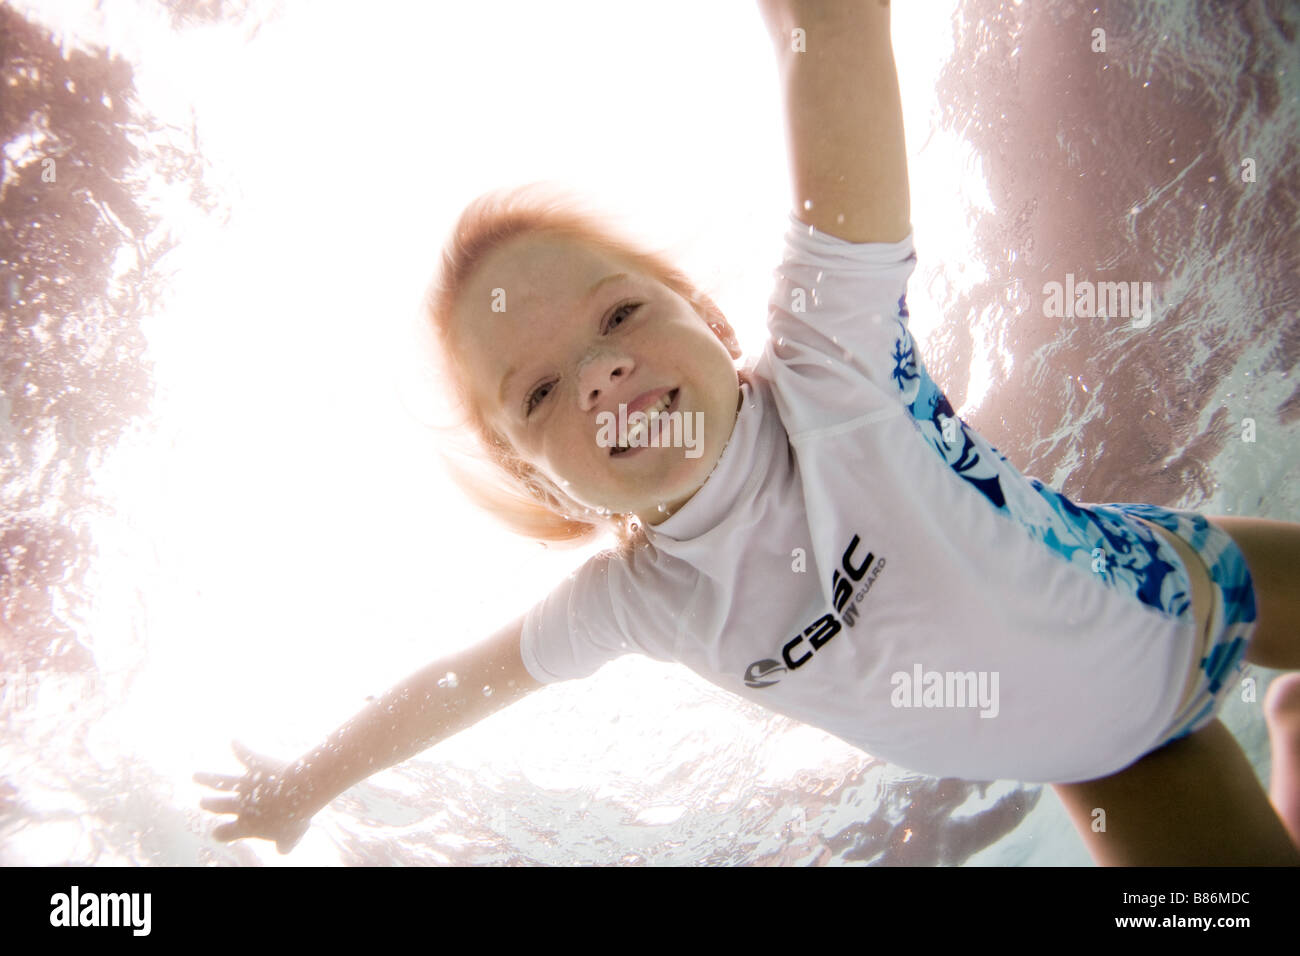 child swimming in pool - Stock Image